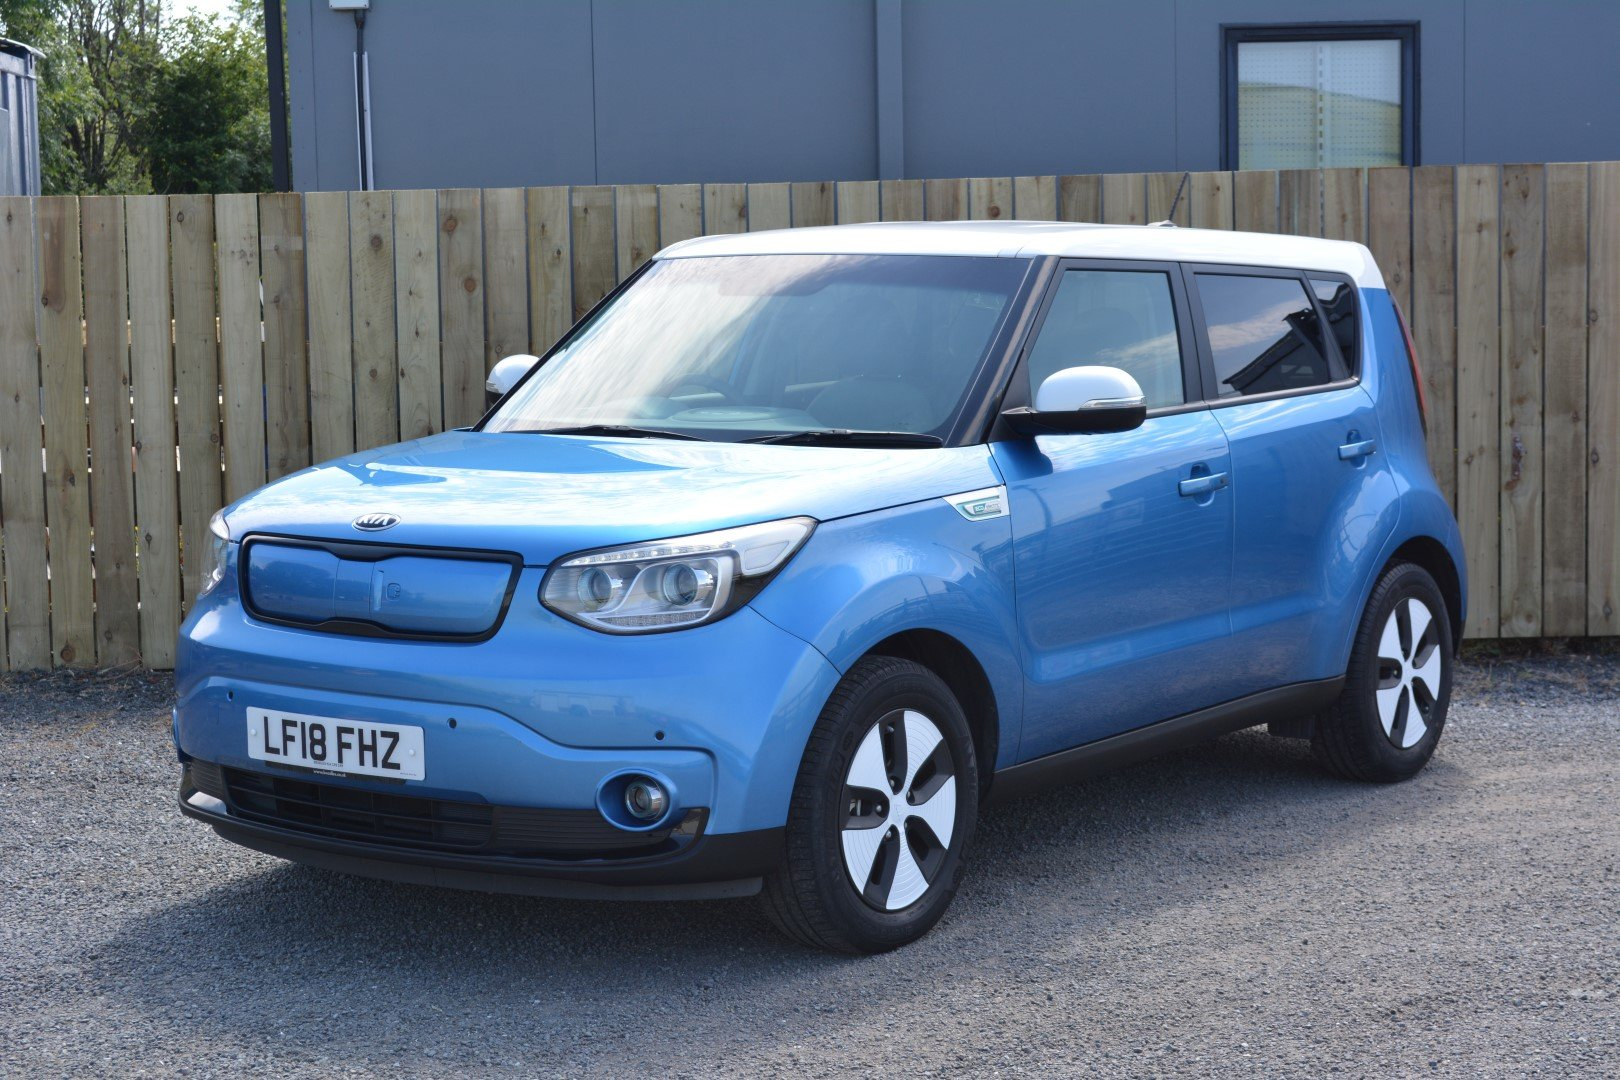 2018 Kia Soul EV Fully Electric - Practical Space - Great Range For Sale (picture 1 of 6)